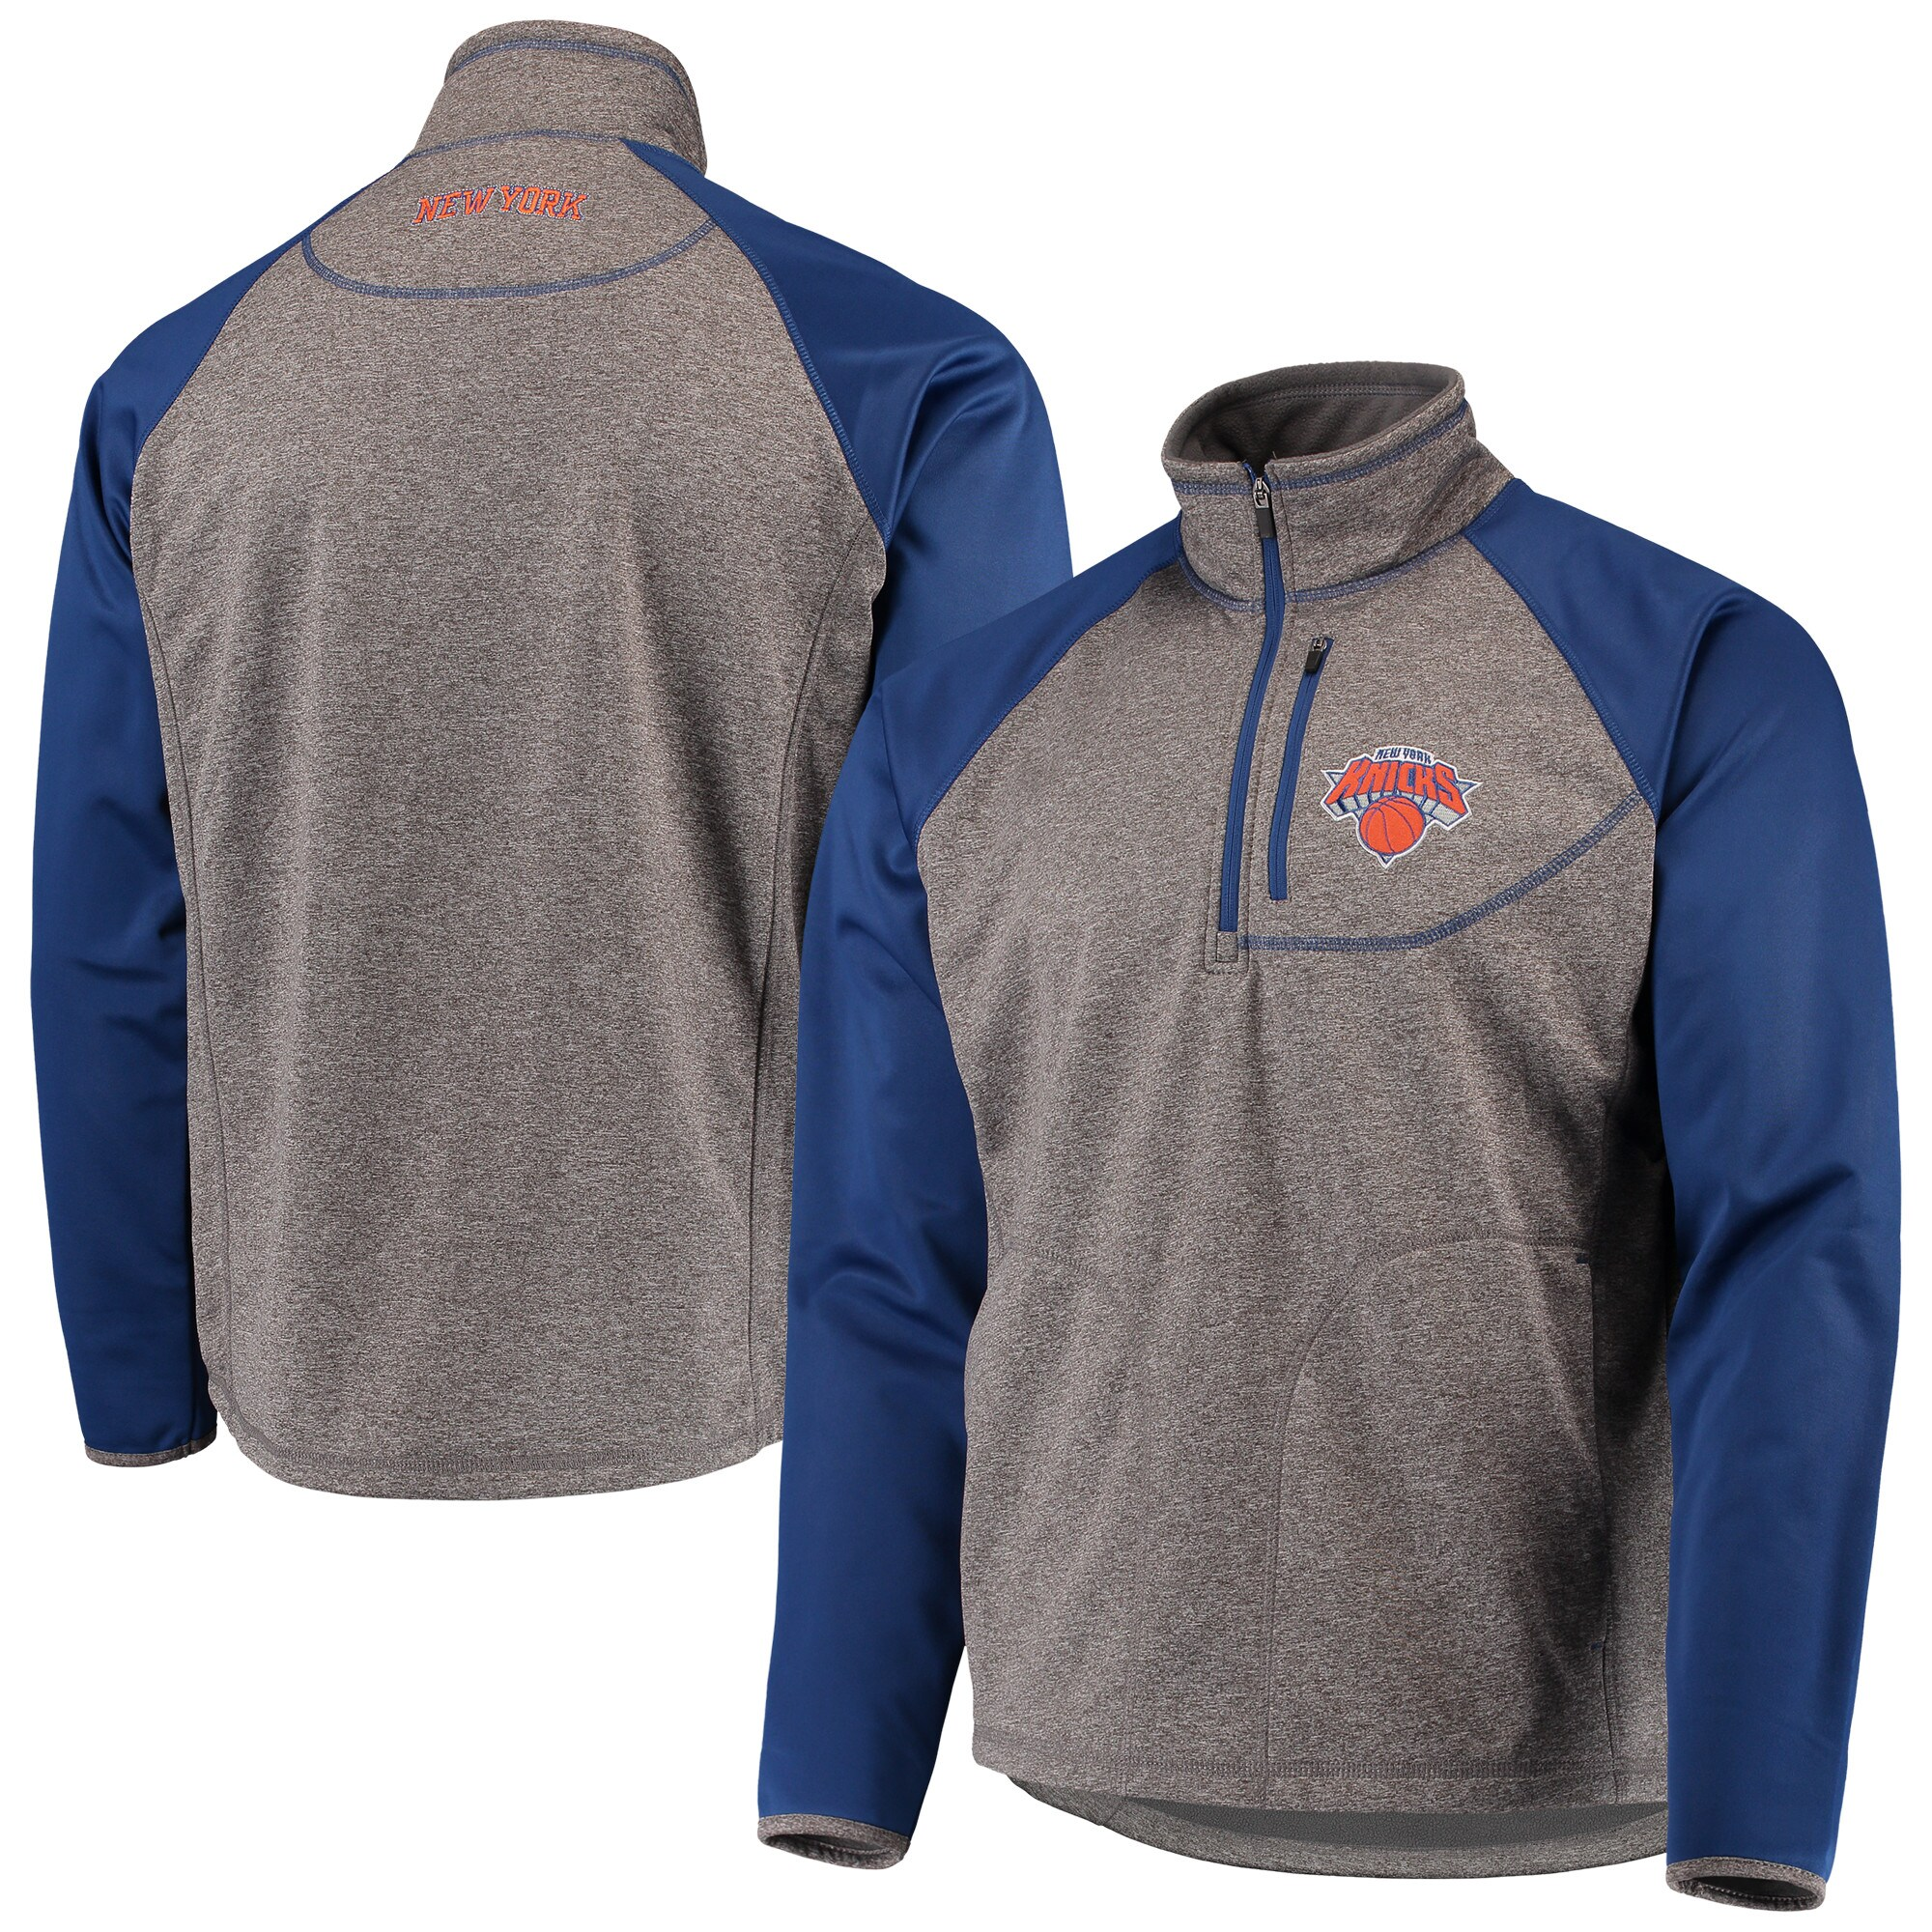 New York Knicks G-III Sports by Carl Banks Mountain Trail Half-Zip Pullover Jacket - Gray/Blue